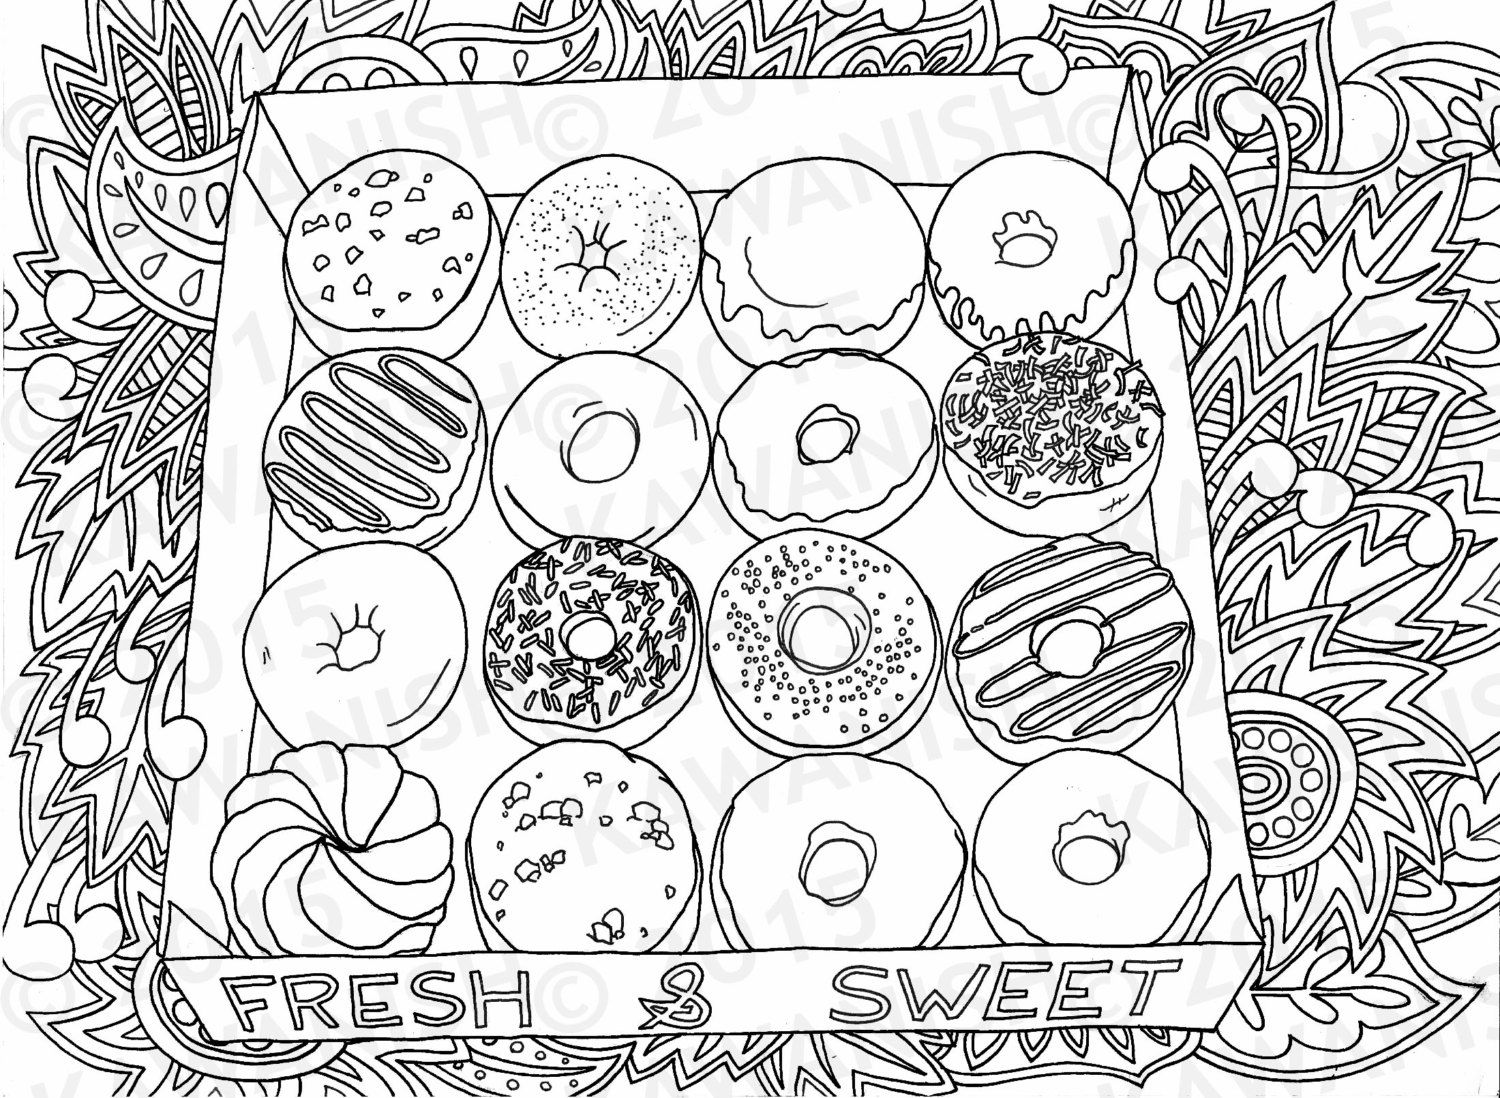 Donuts Doughnuts Adult Coloring Page Gift Wall Art Adult Coloring